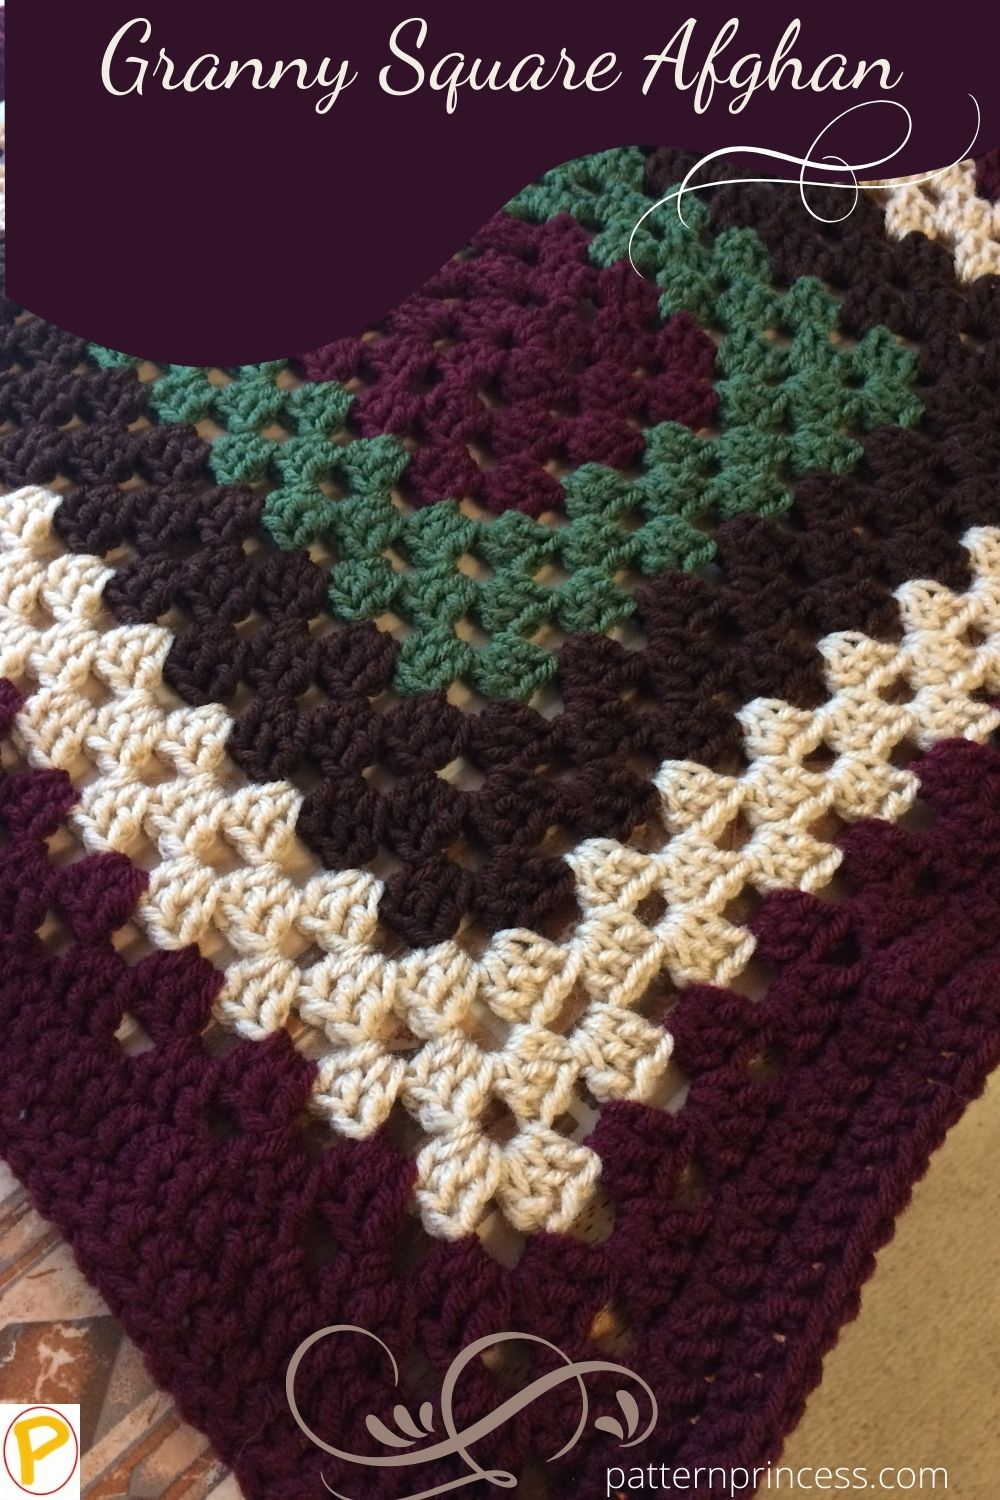 Granny Square Afghan Corner with burgundy white and green colors